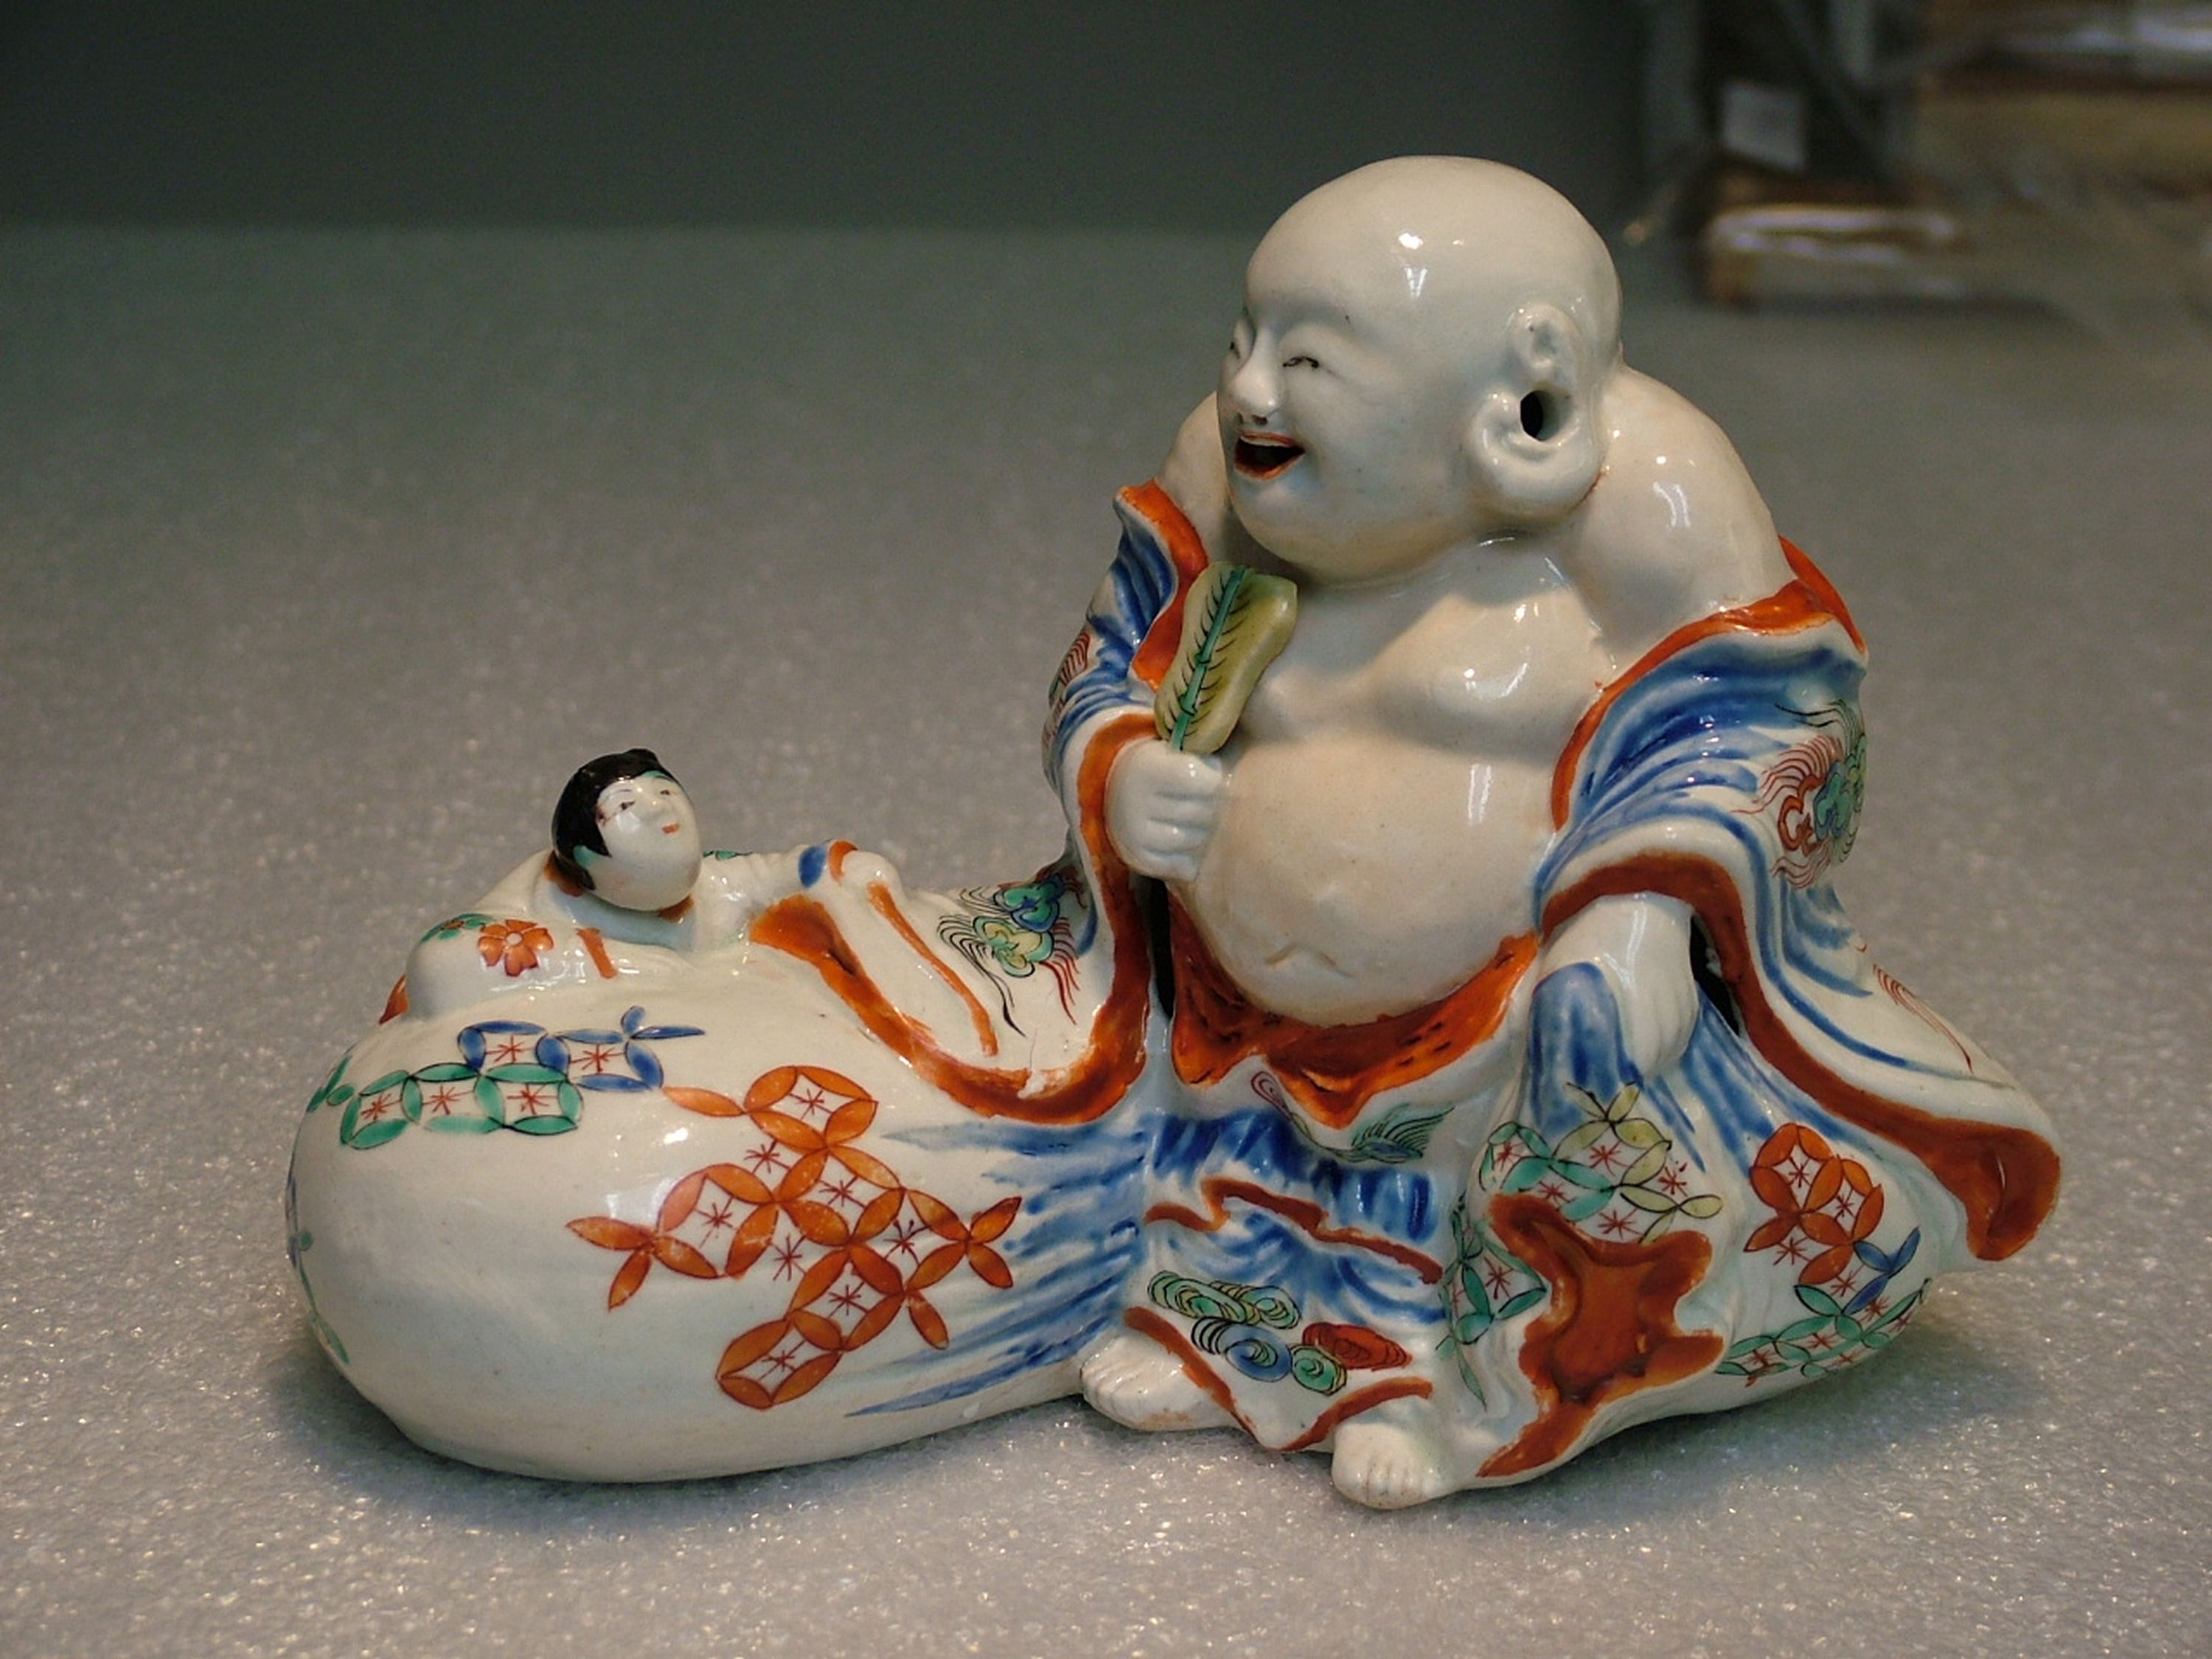 Hotei is a Buddhist folk character who supposedly lived in China during the early 10th century. He is now worshipped in Japan as the God of Good Fortune. // Hotei sculpture, Japan, Edo period (1615-1868), about 1750. Gift of Mr. and Mrs. Bartlett G. Bretz.